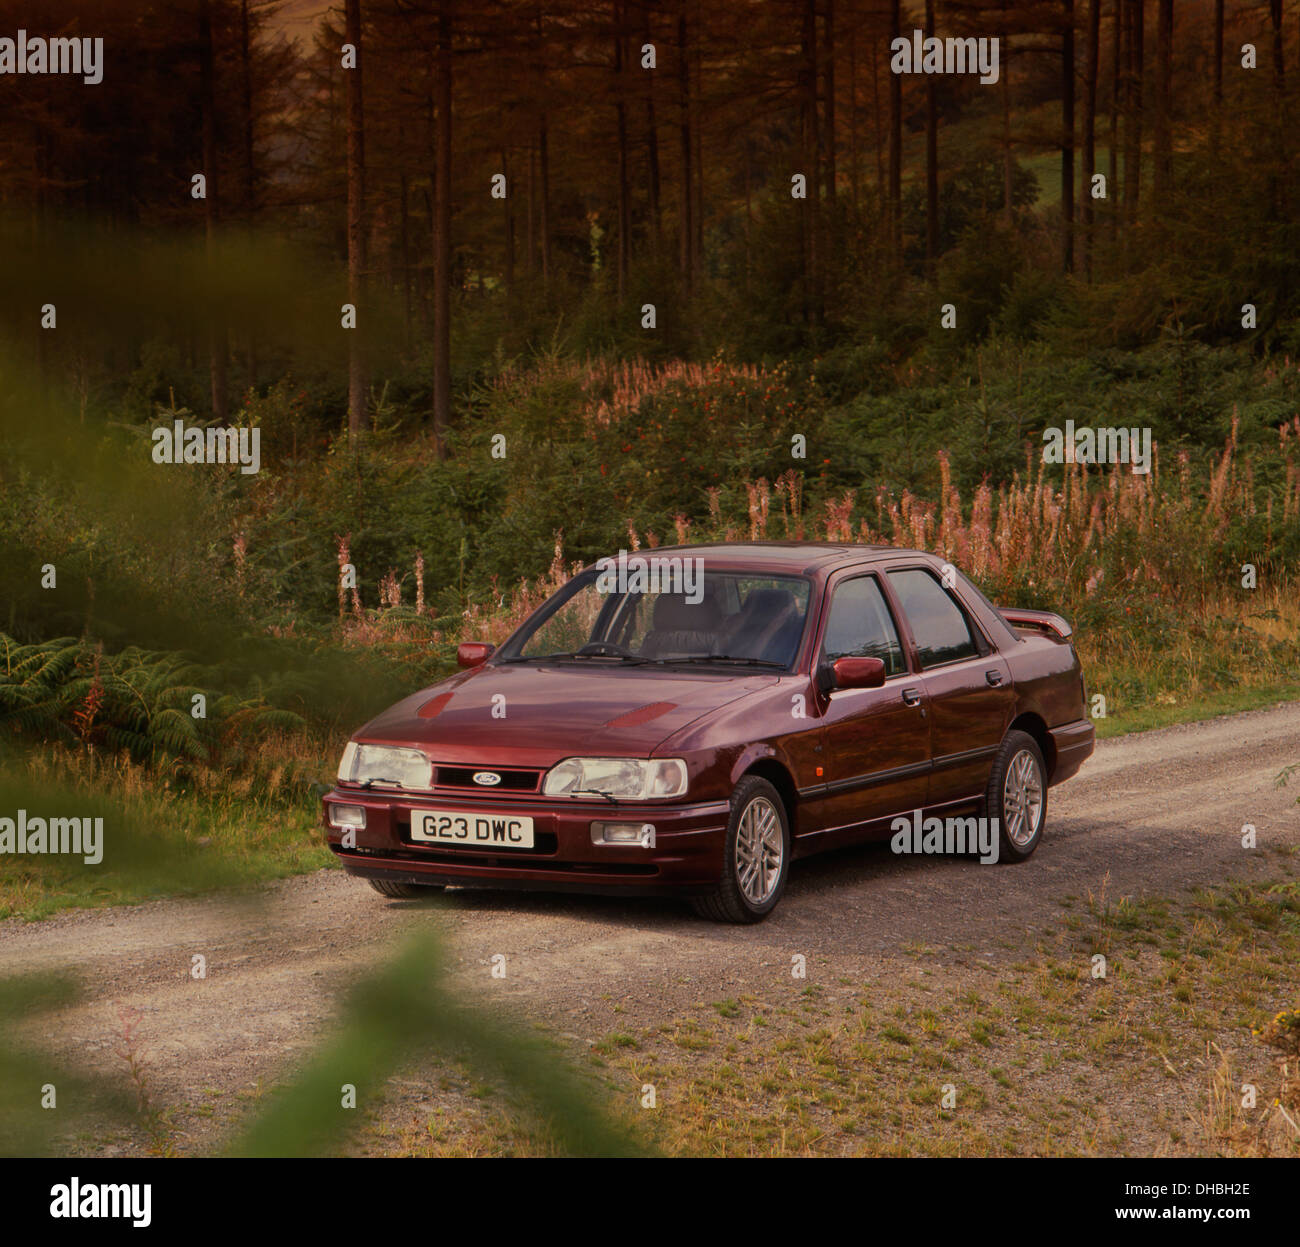 Ford Sierra Sapphire RS Cosworth 4x4 1990 - Stock Image